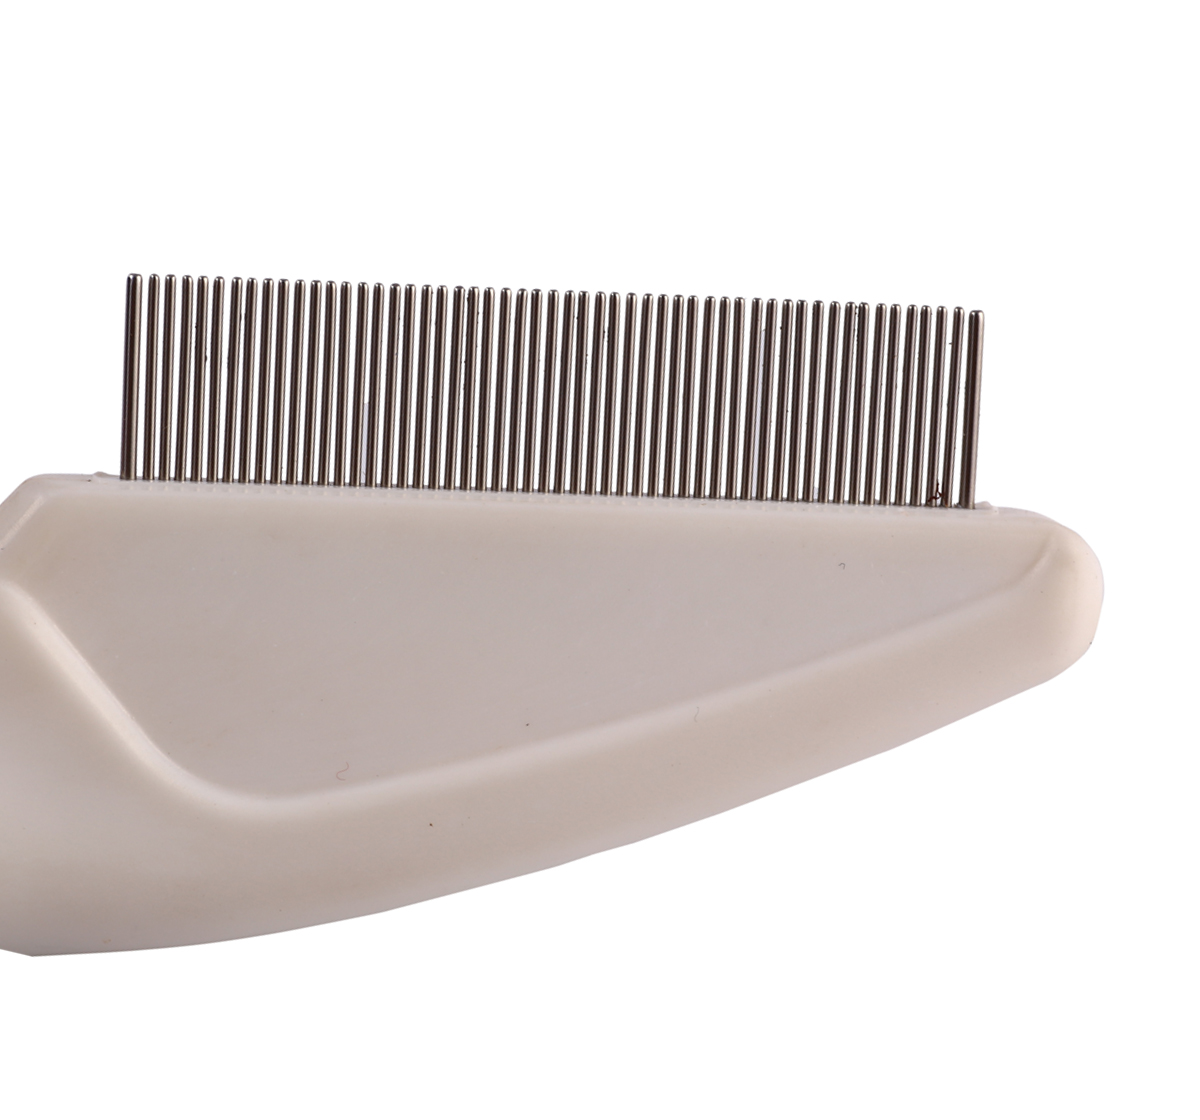 DogSpot Flea comb With Non - Slip Rubber Grip Handle